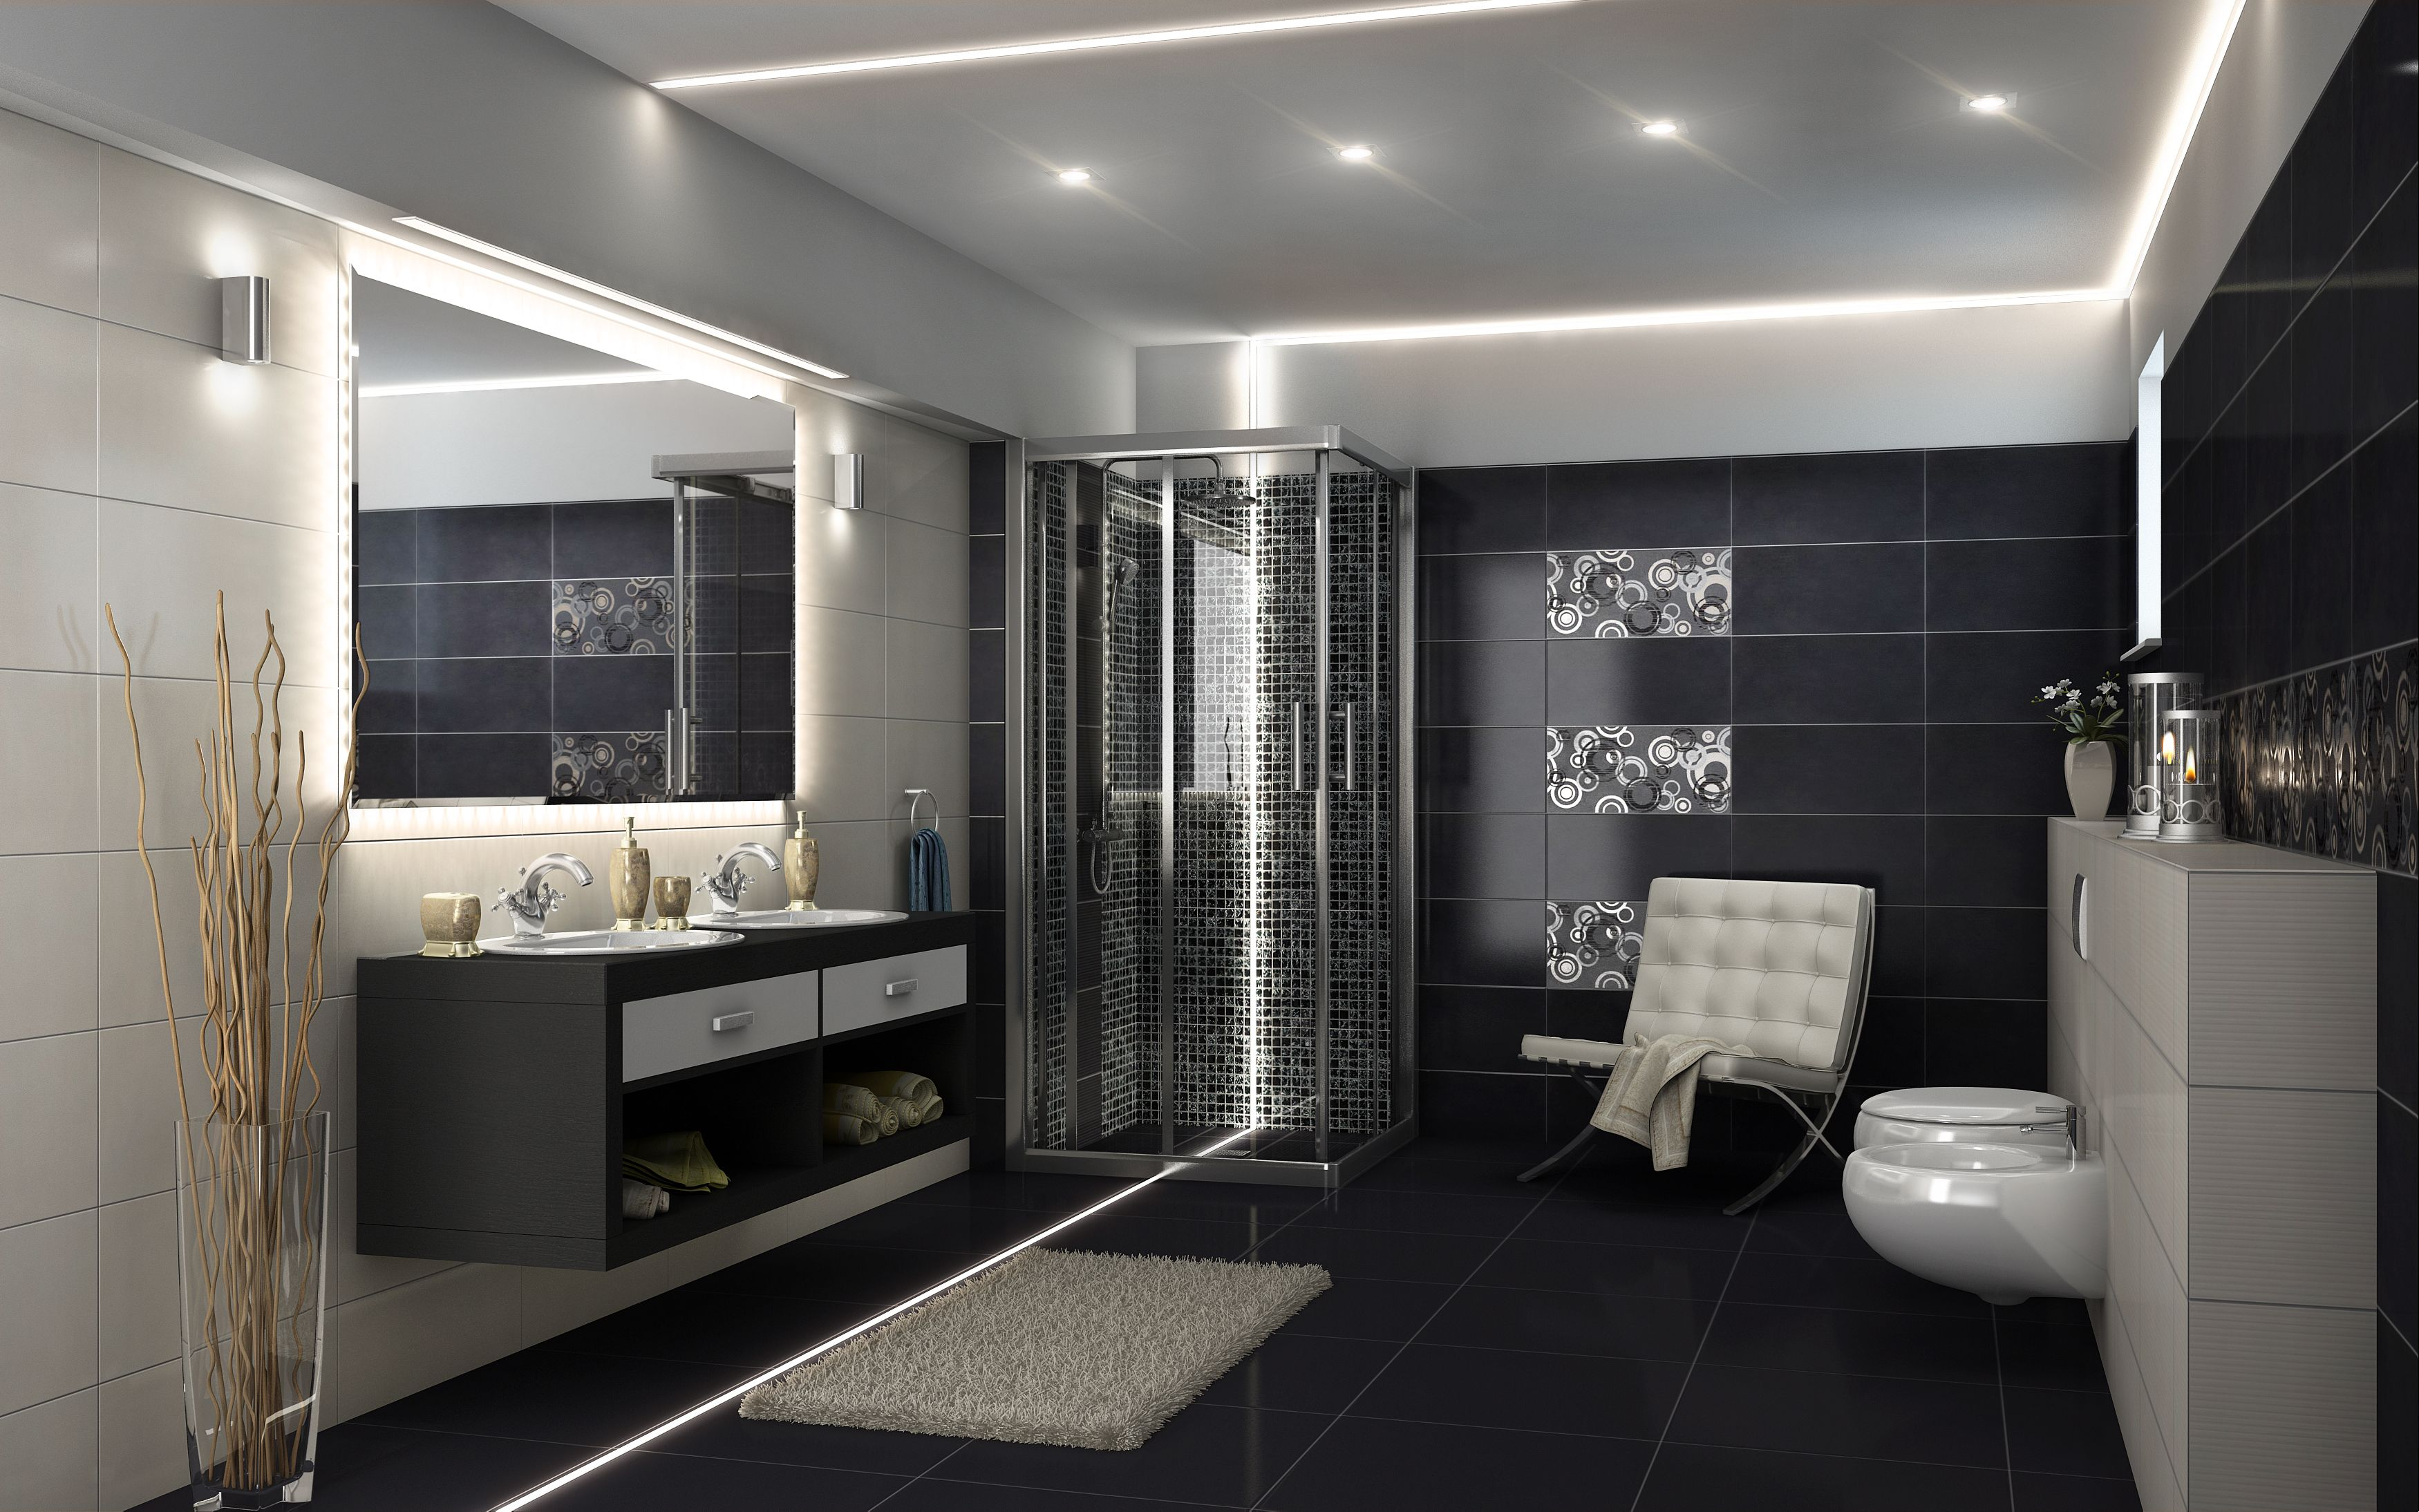 Led Lighting For Bathroom Ceiling And Floor Lights Lumines